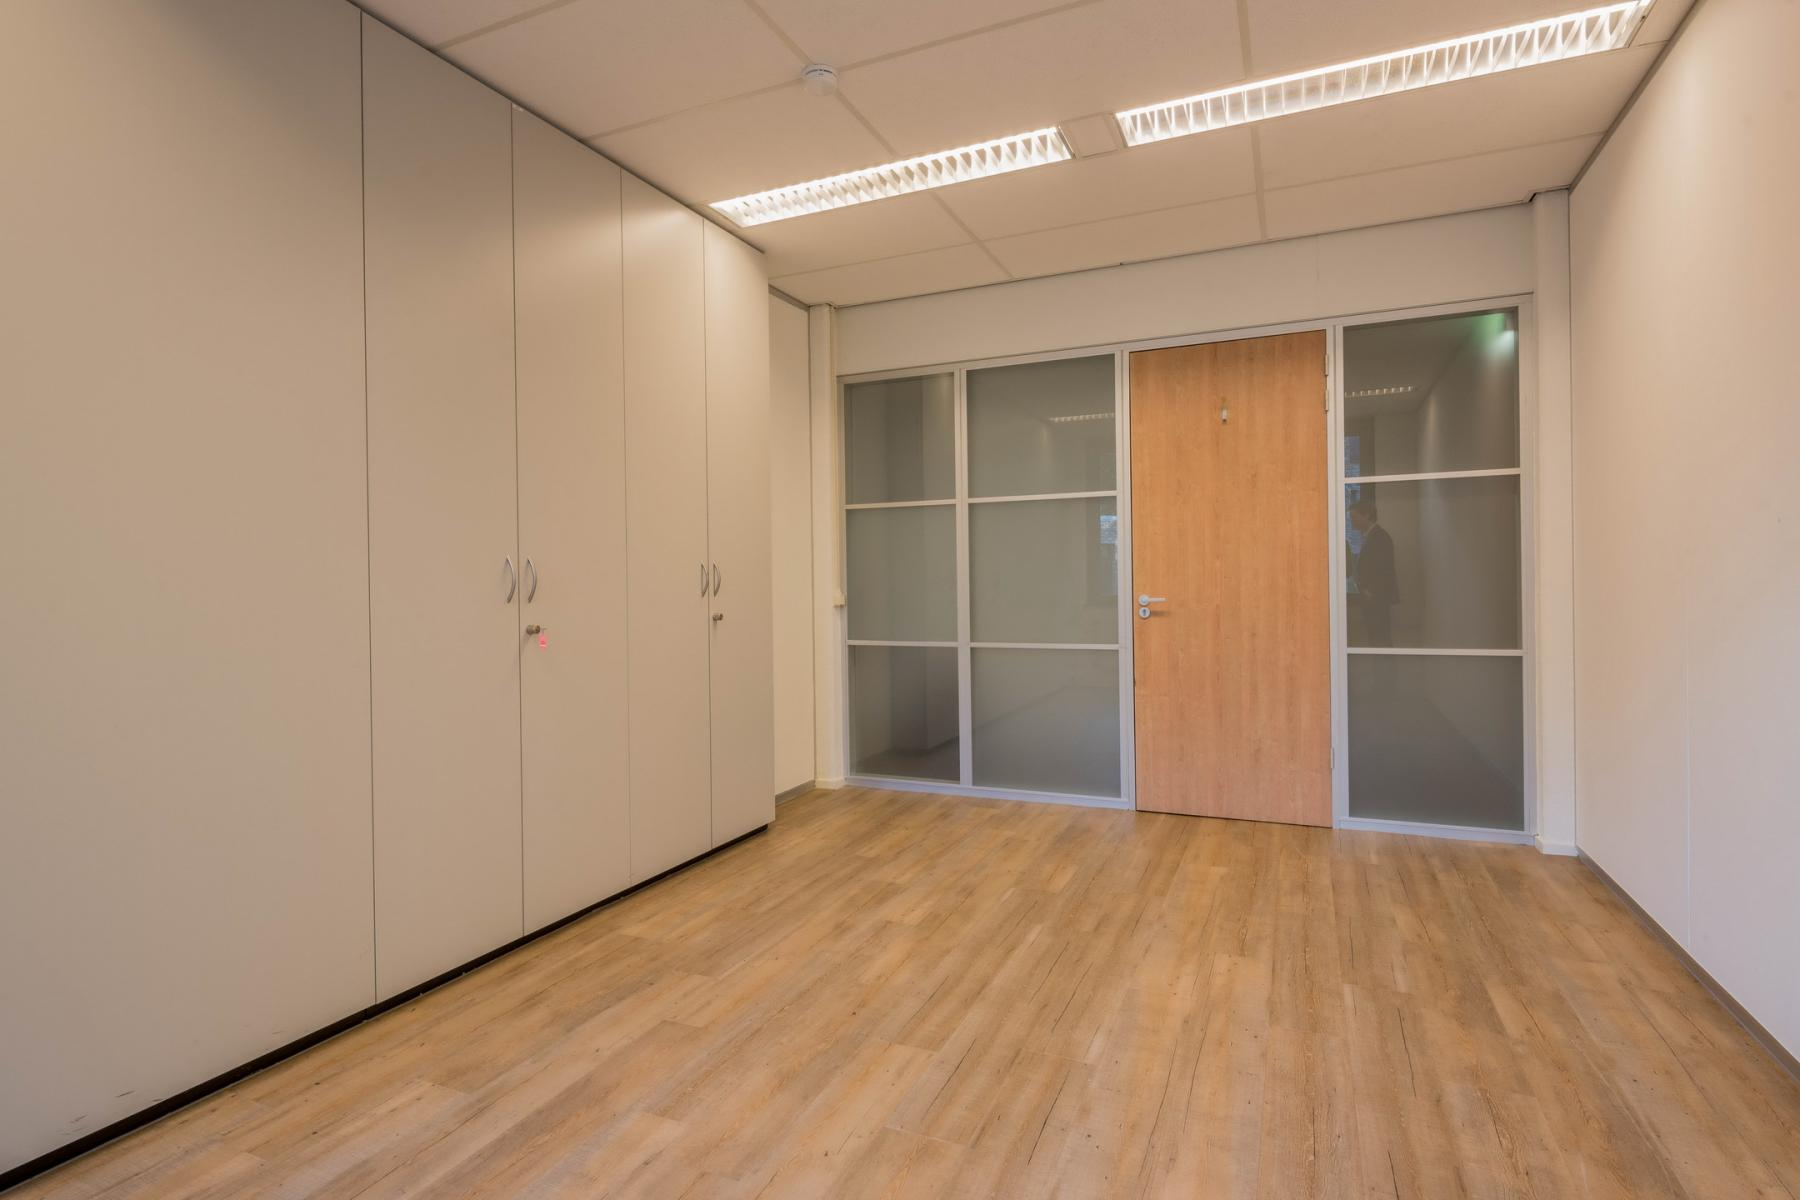 Office space for rent at the Mozartlaan